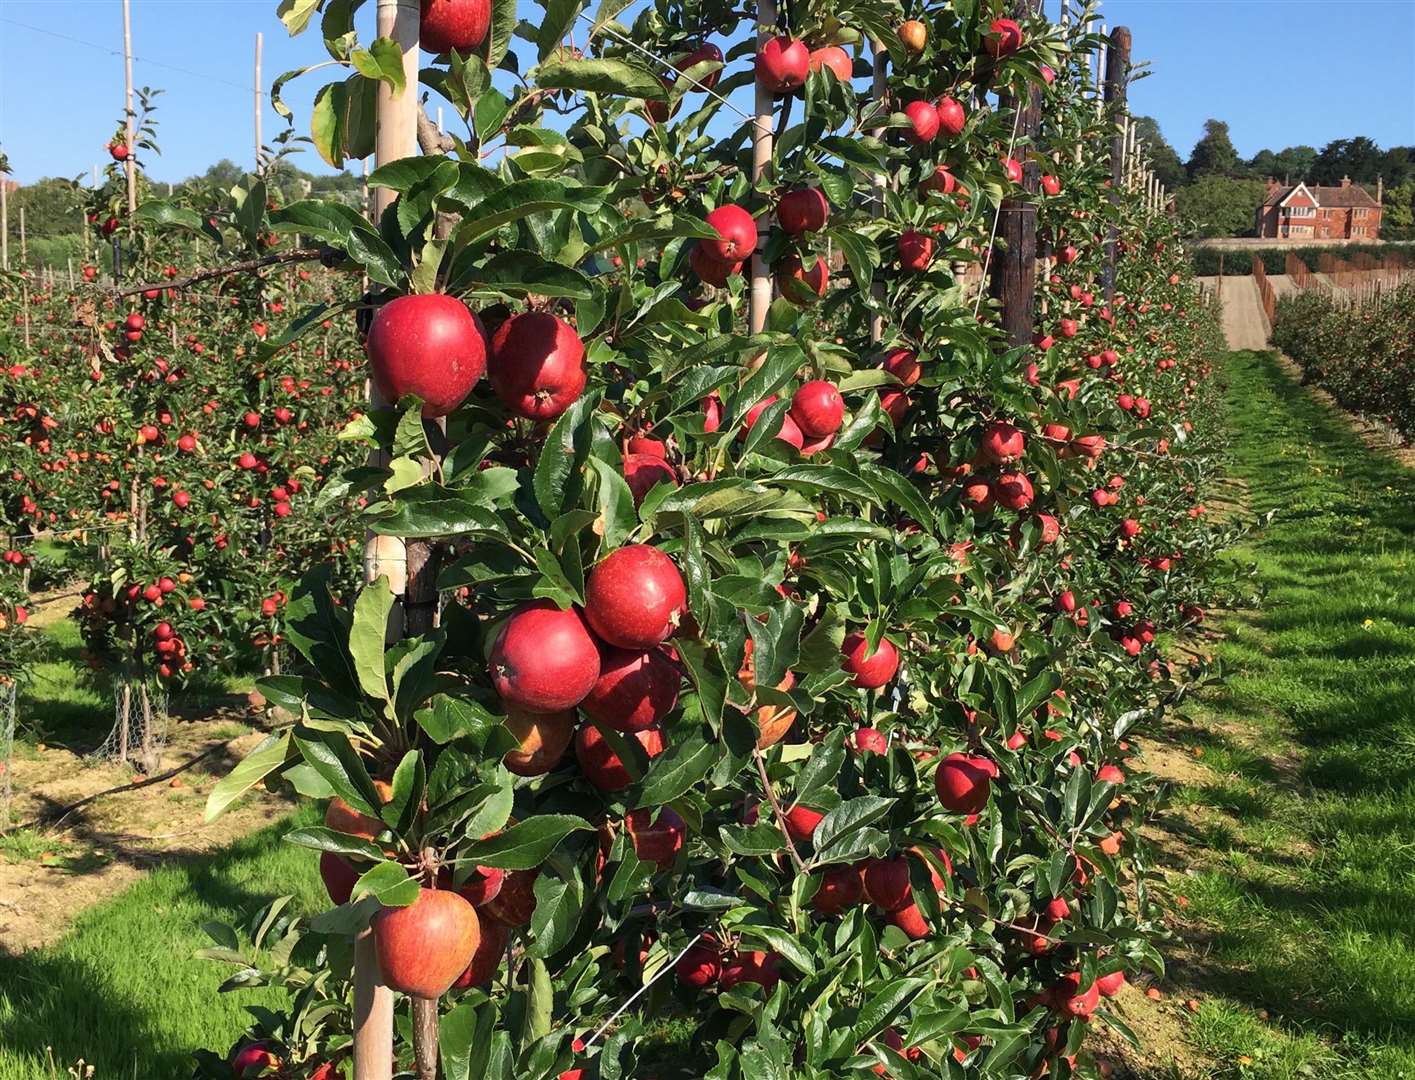 Apples growing at AC Goatham & Son, which has its headquarters in Hoo